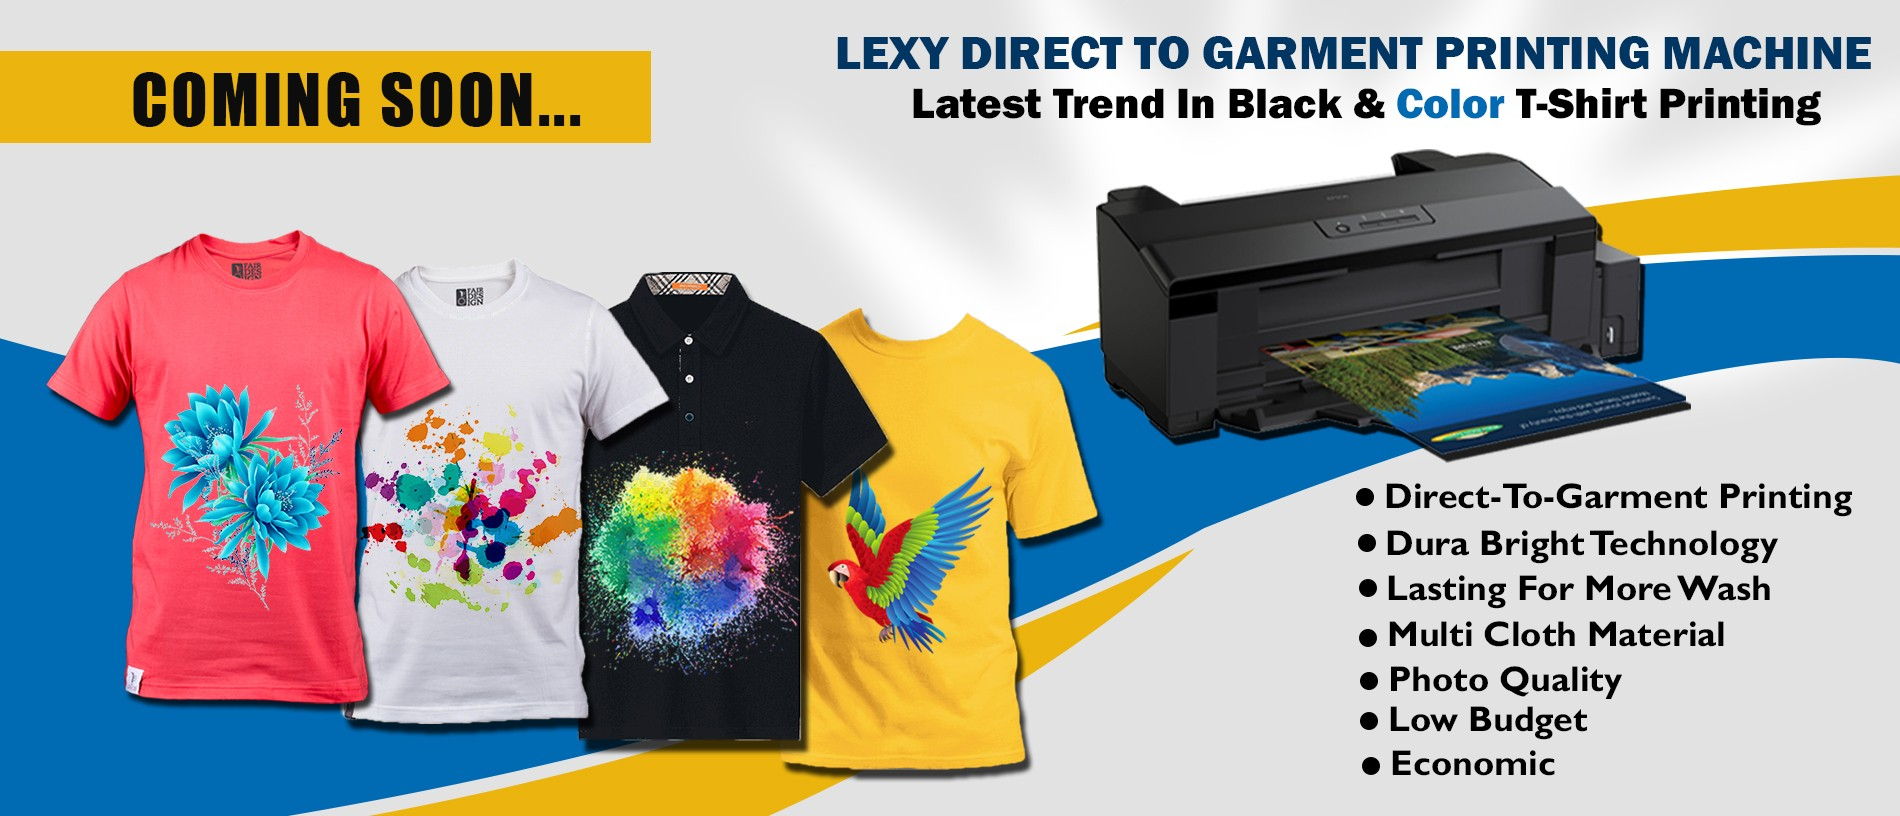 Lexy T-Shirt Printing Machine